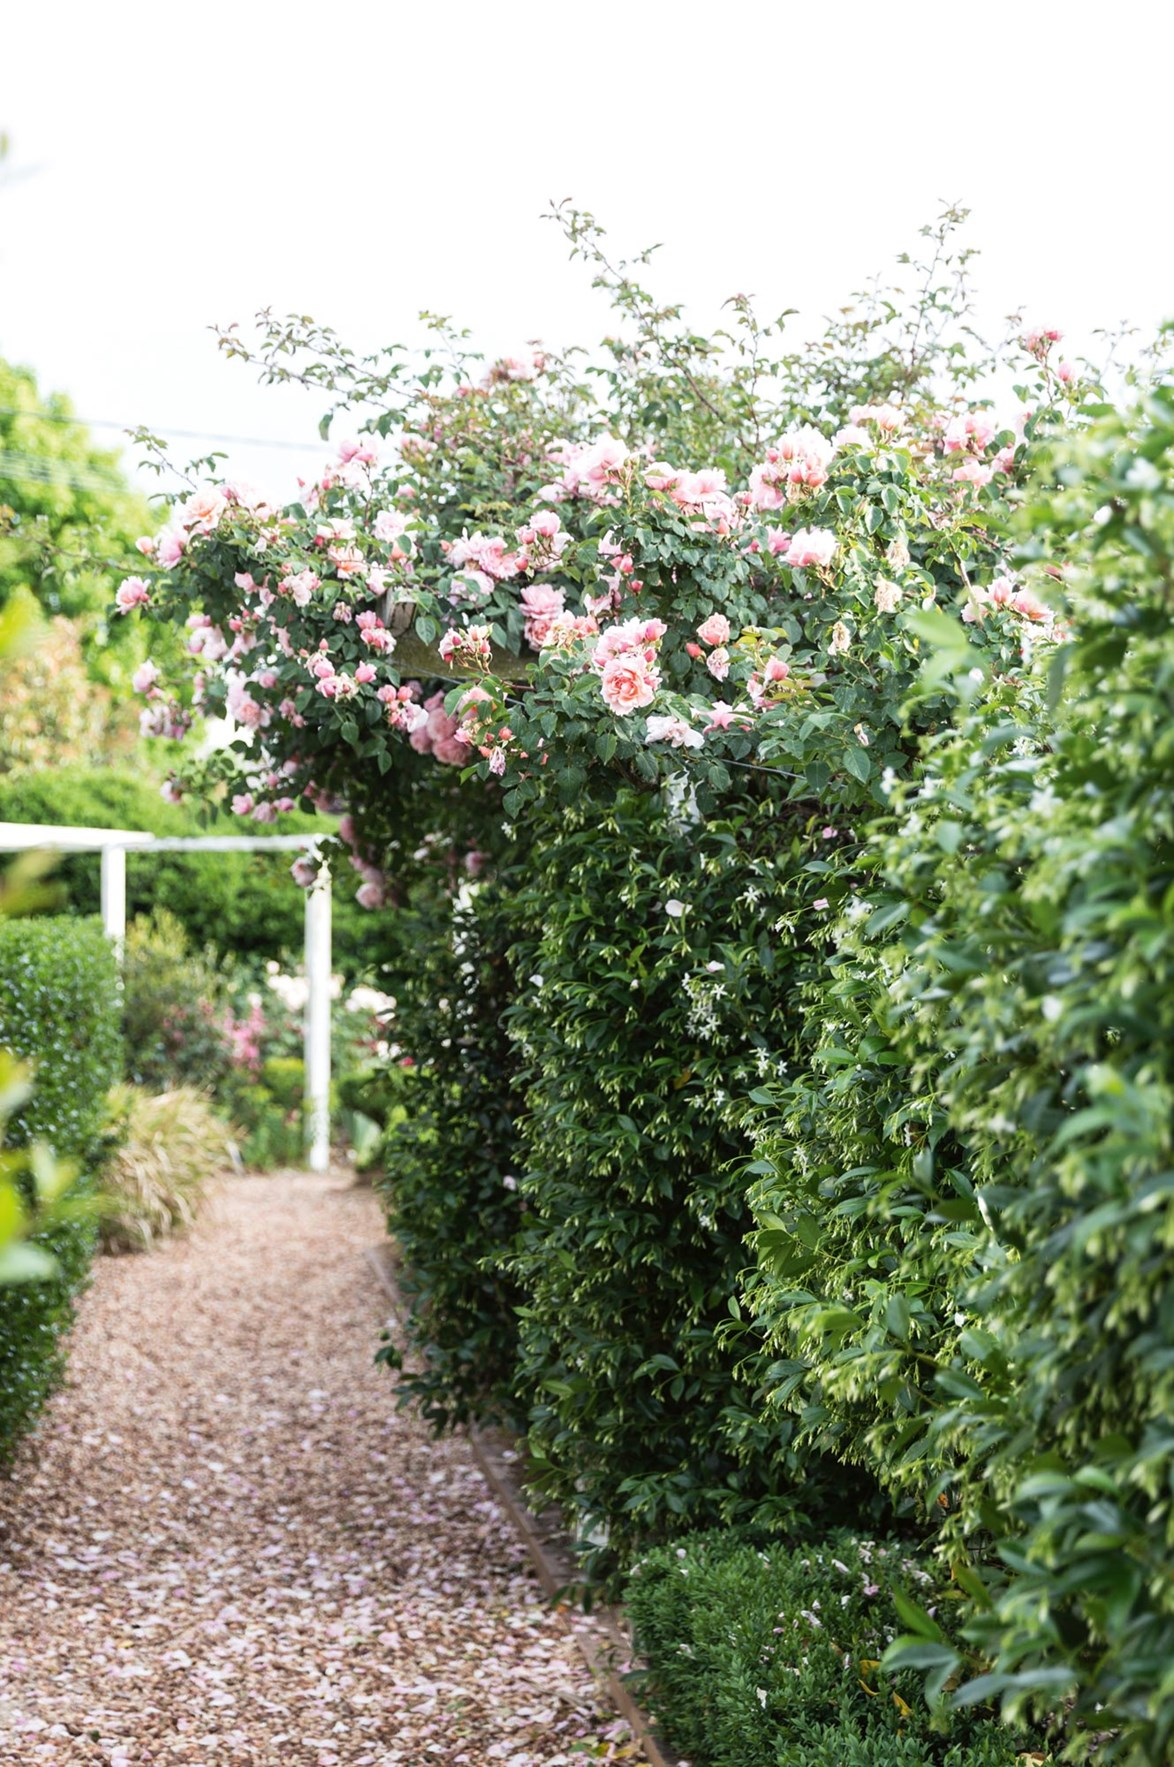 """Swathes of blushing pink compliment the hedging and greenery at this [magnificent garden in Queensland](https://www.homestolove.com.au/magnificent-qld-garden-abloom-with-wisteria-and-rambling-roses-13978